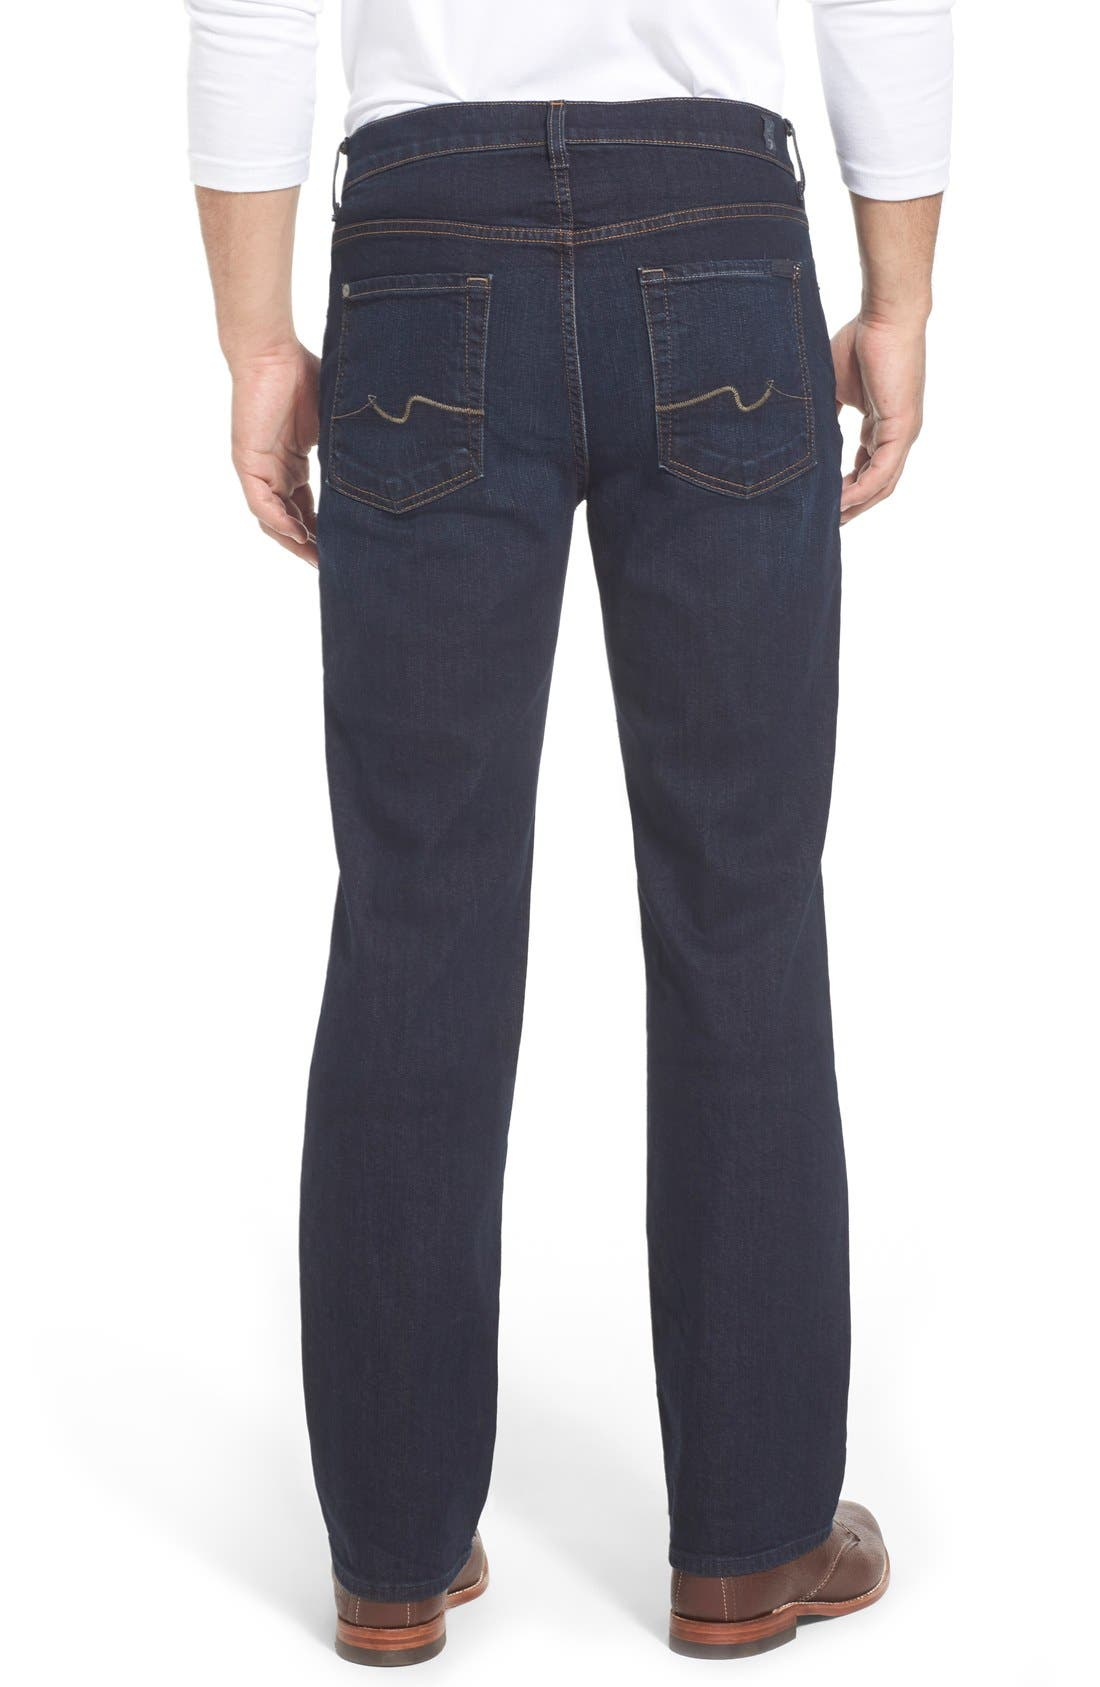 'Austyn- LuxePerformance' Relaxed Fit Jeans,                             Alternate thumbnail 6, color,